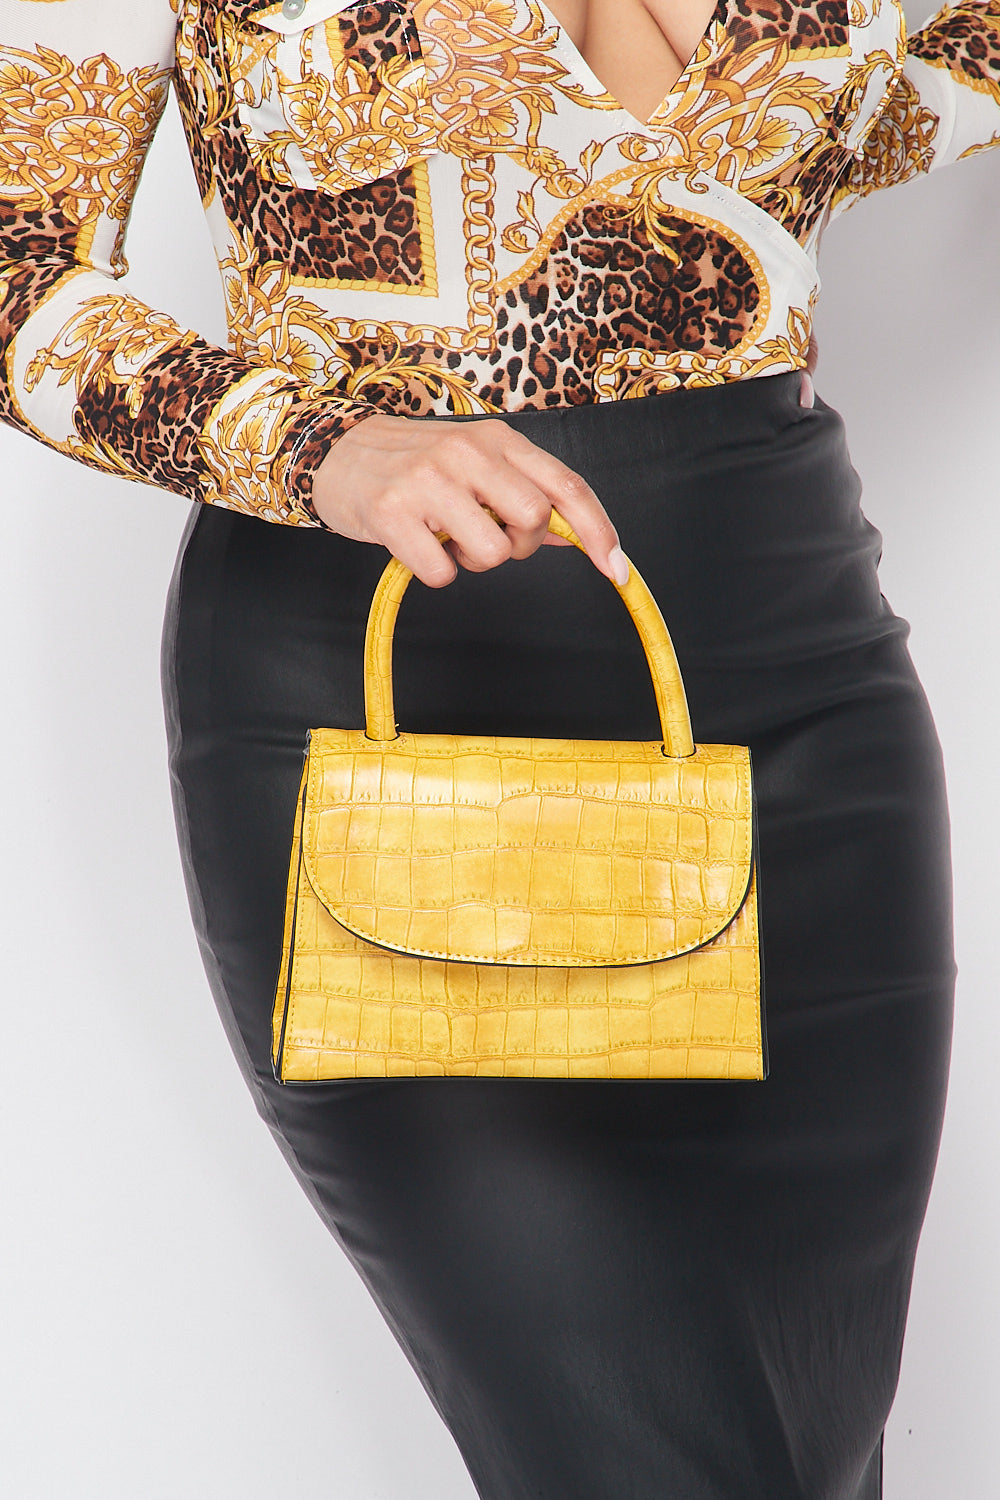 Croc Embossed Satchel Bag in Mustard - Fashion House USA